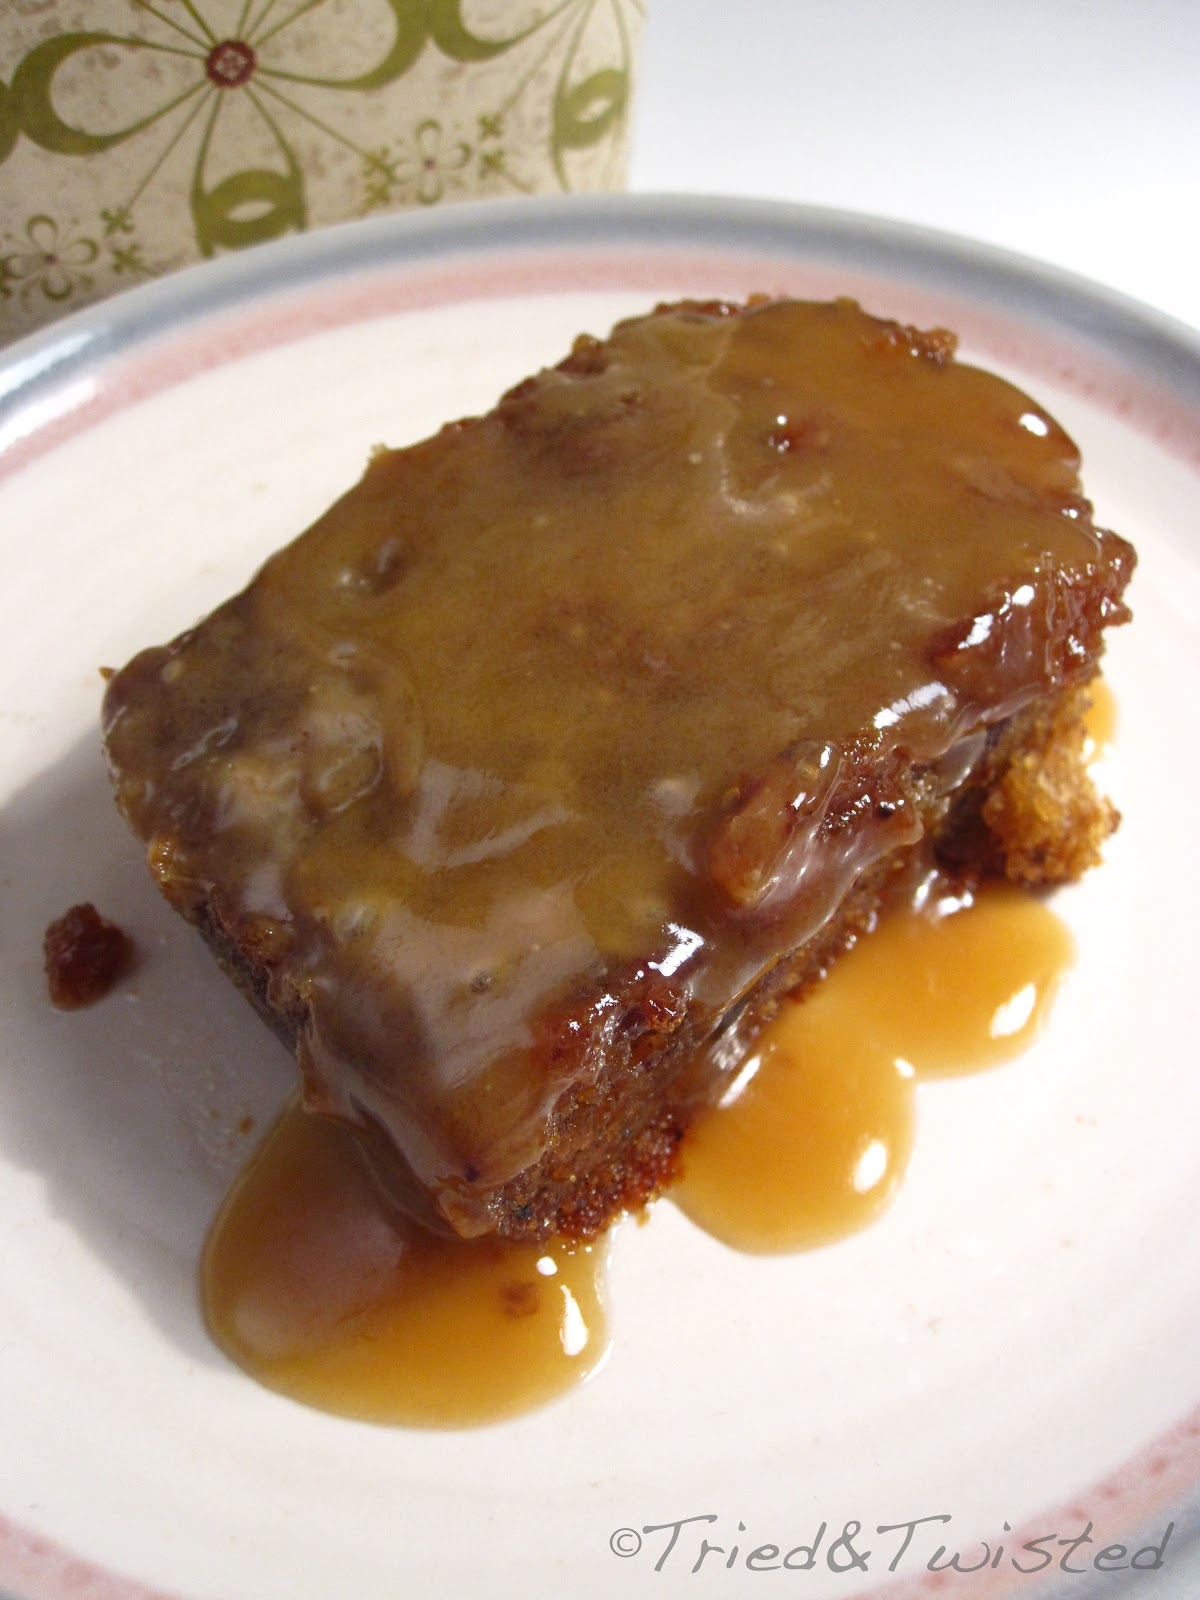 Tried and Twisted: Sticky Toffee Pudding